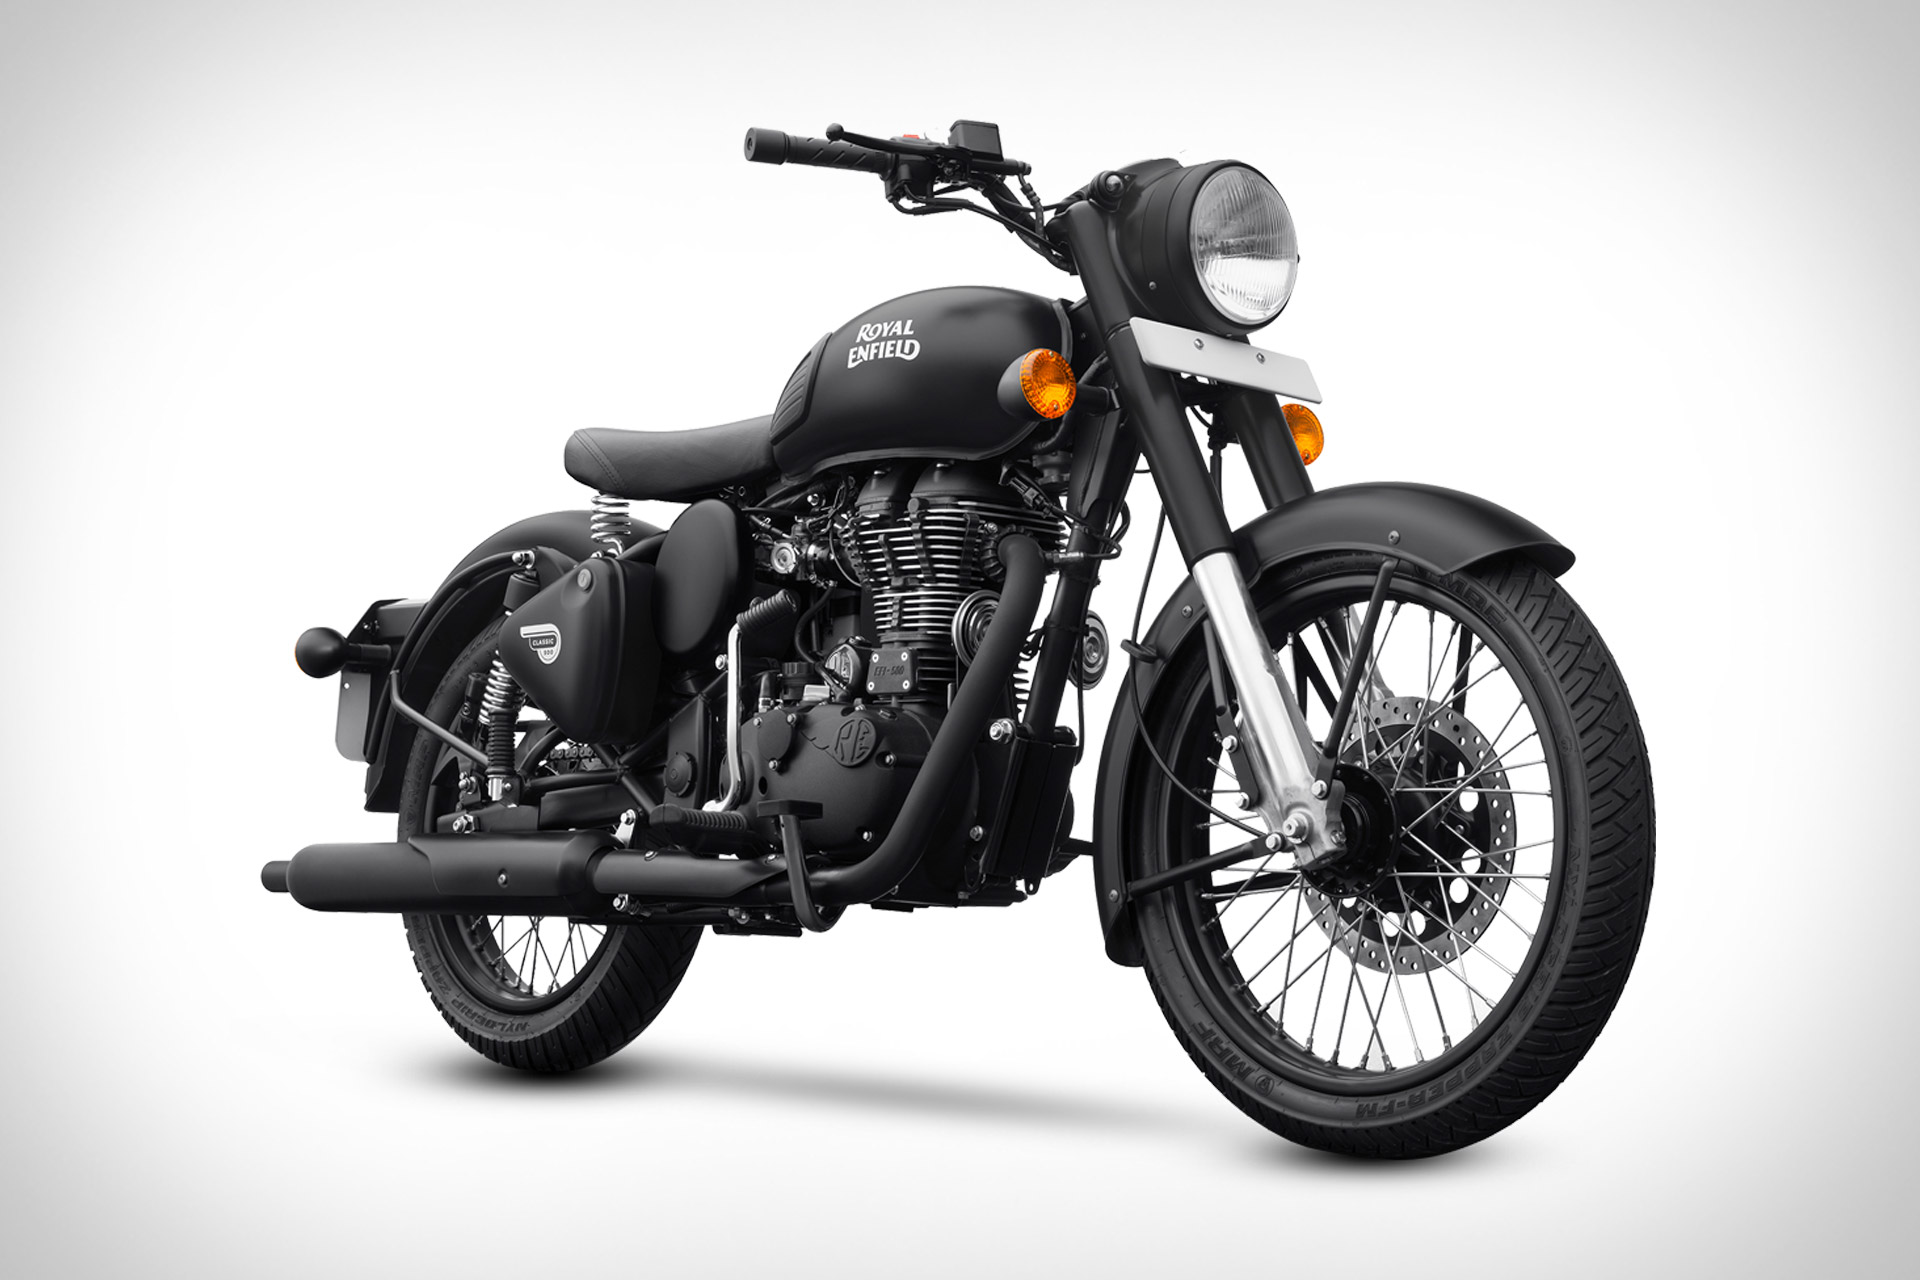 Royal Enfield Classic 500 Stealth Black Motorcycle